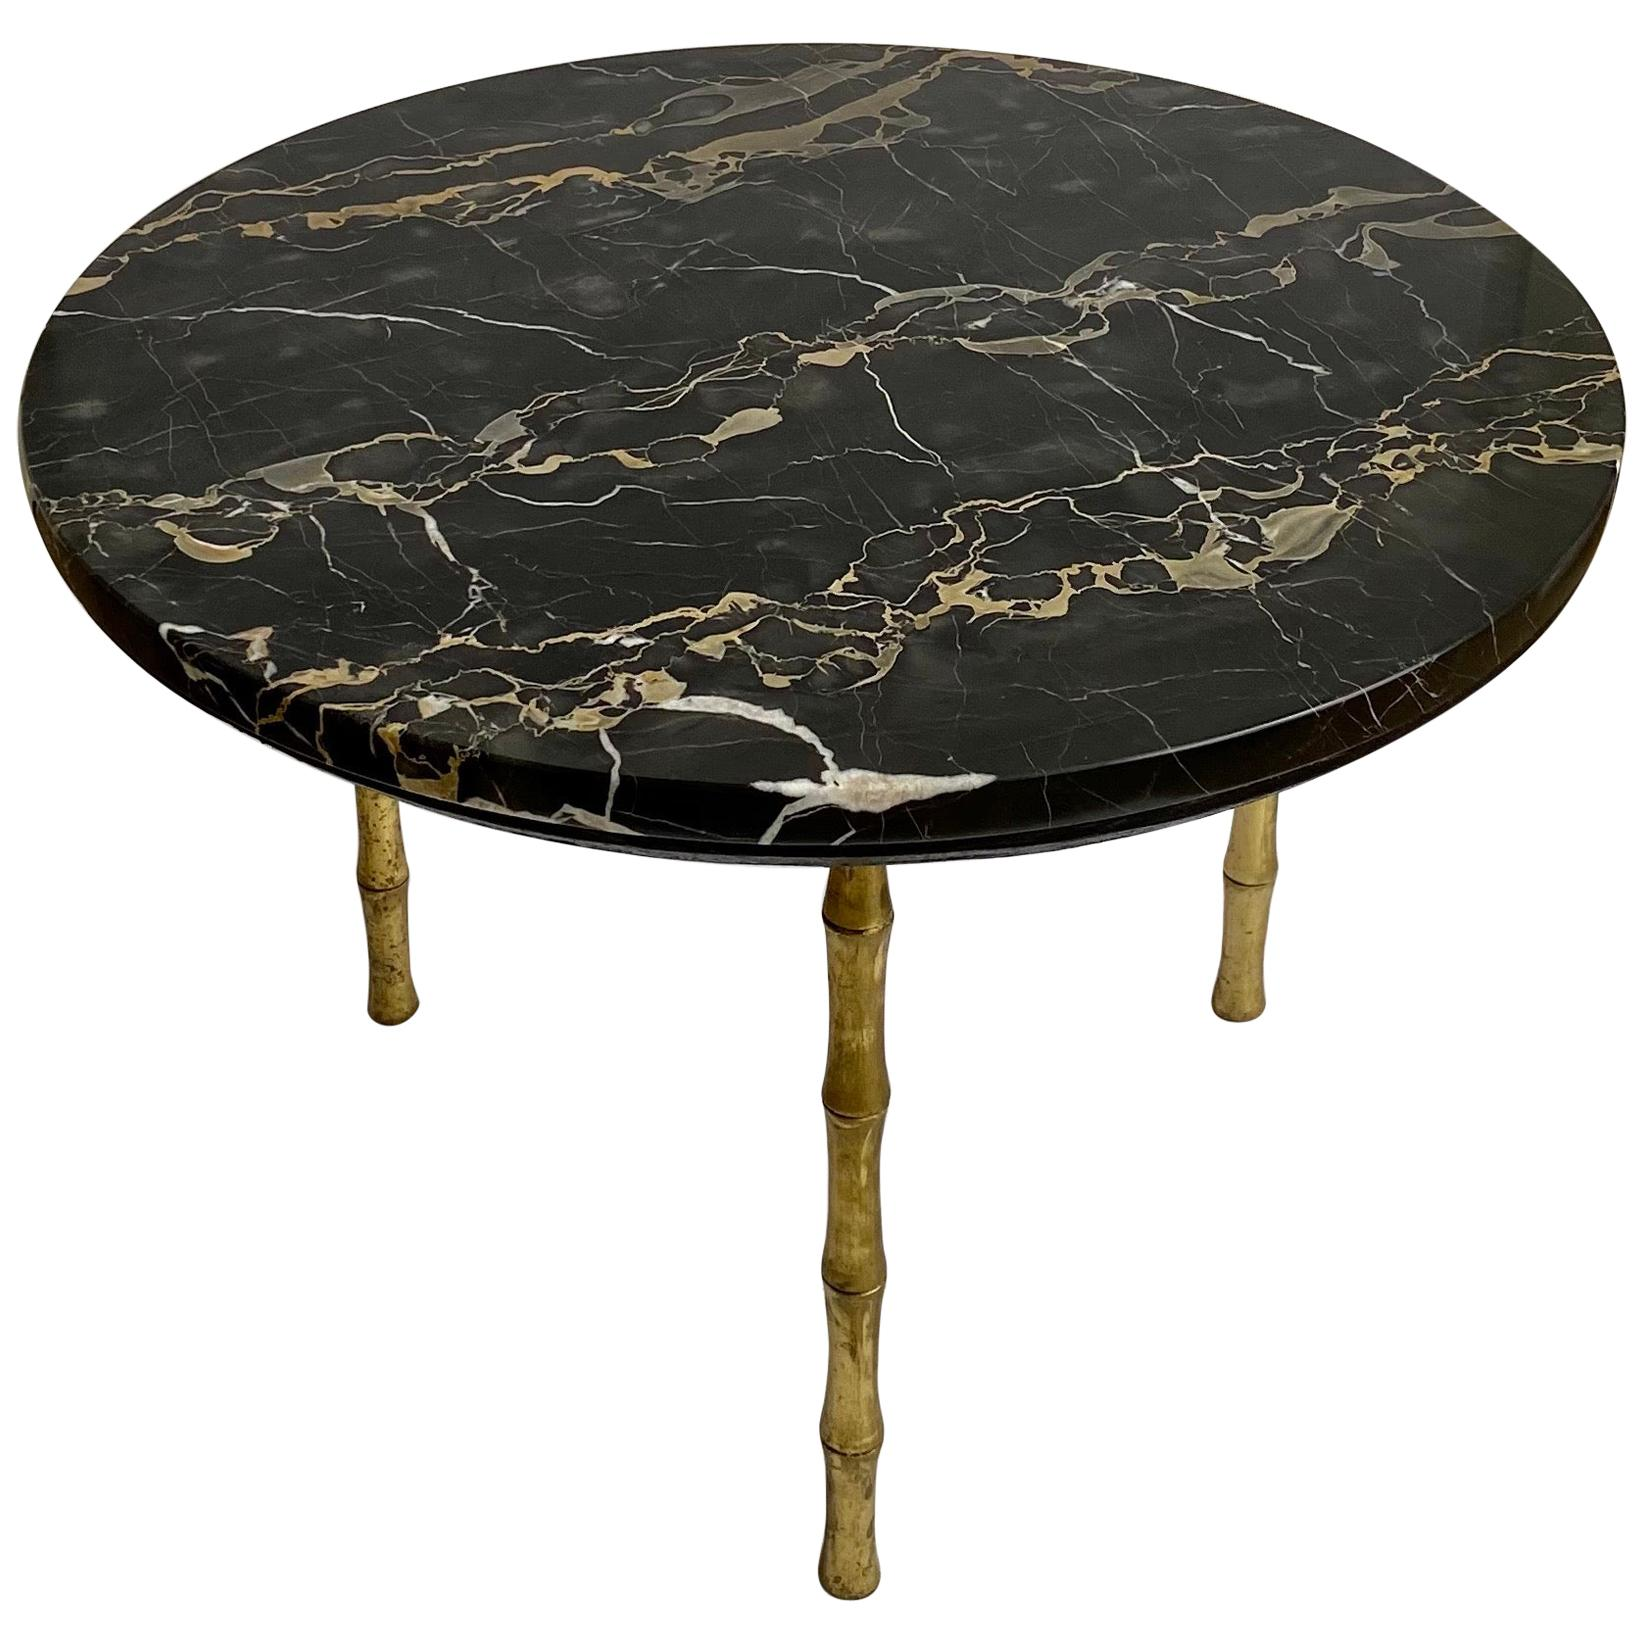 Hollywood Regency Style Round Brass Bamboo and Marble Cocktail Table, Italy